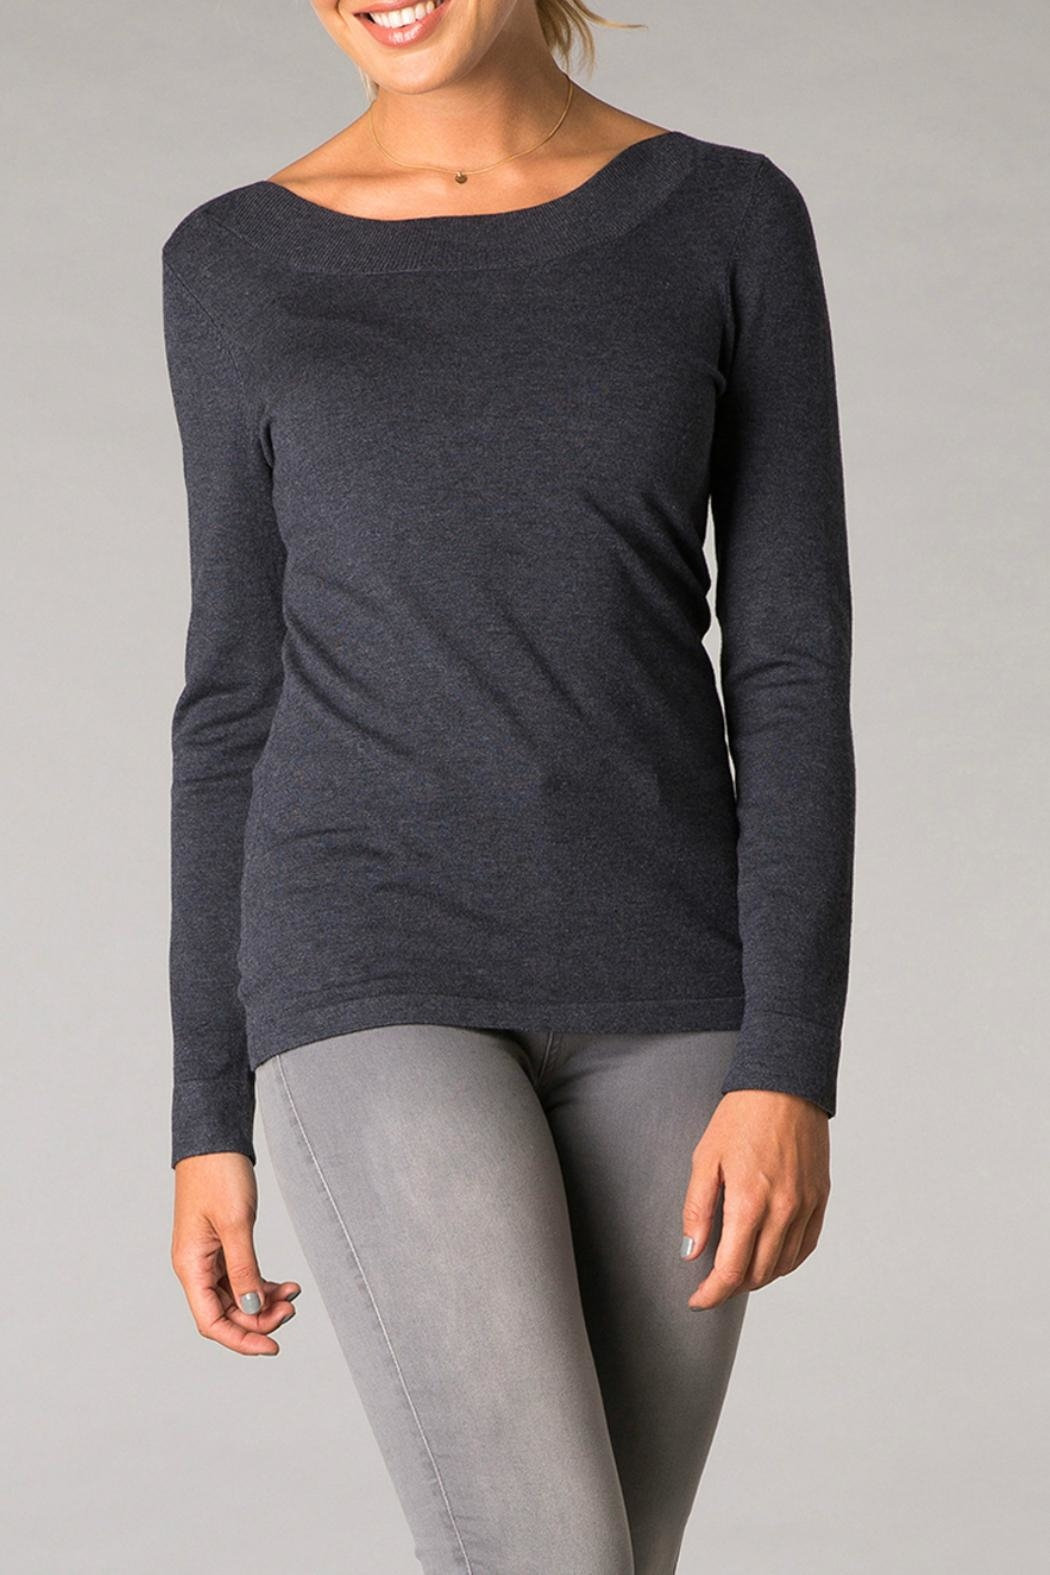 Yest Light Knit Sweatshirt - Front Cropped Image